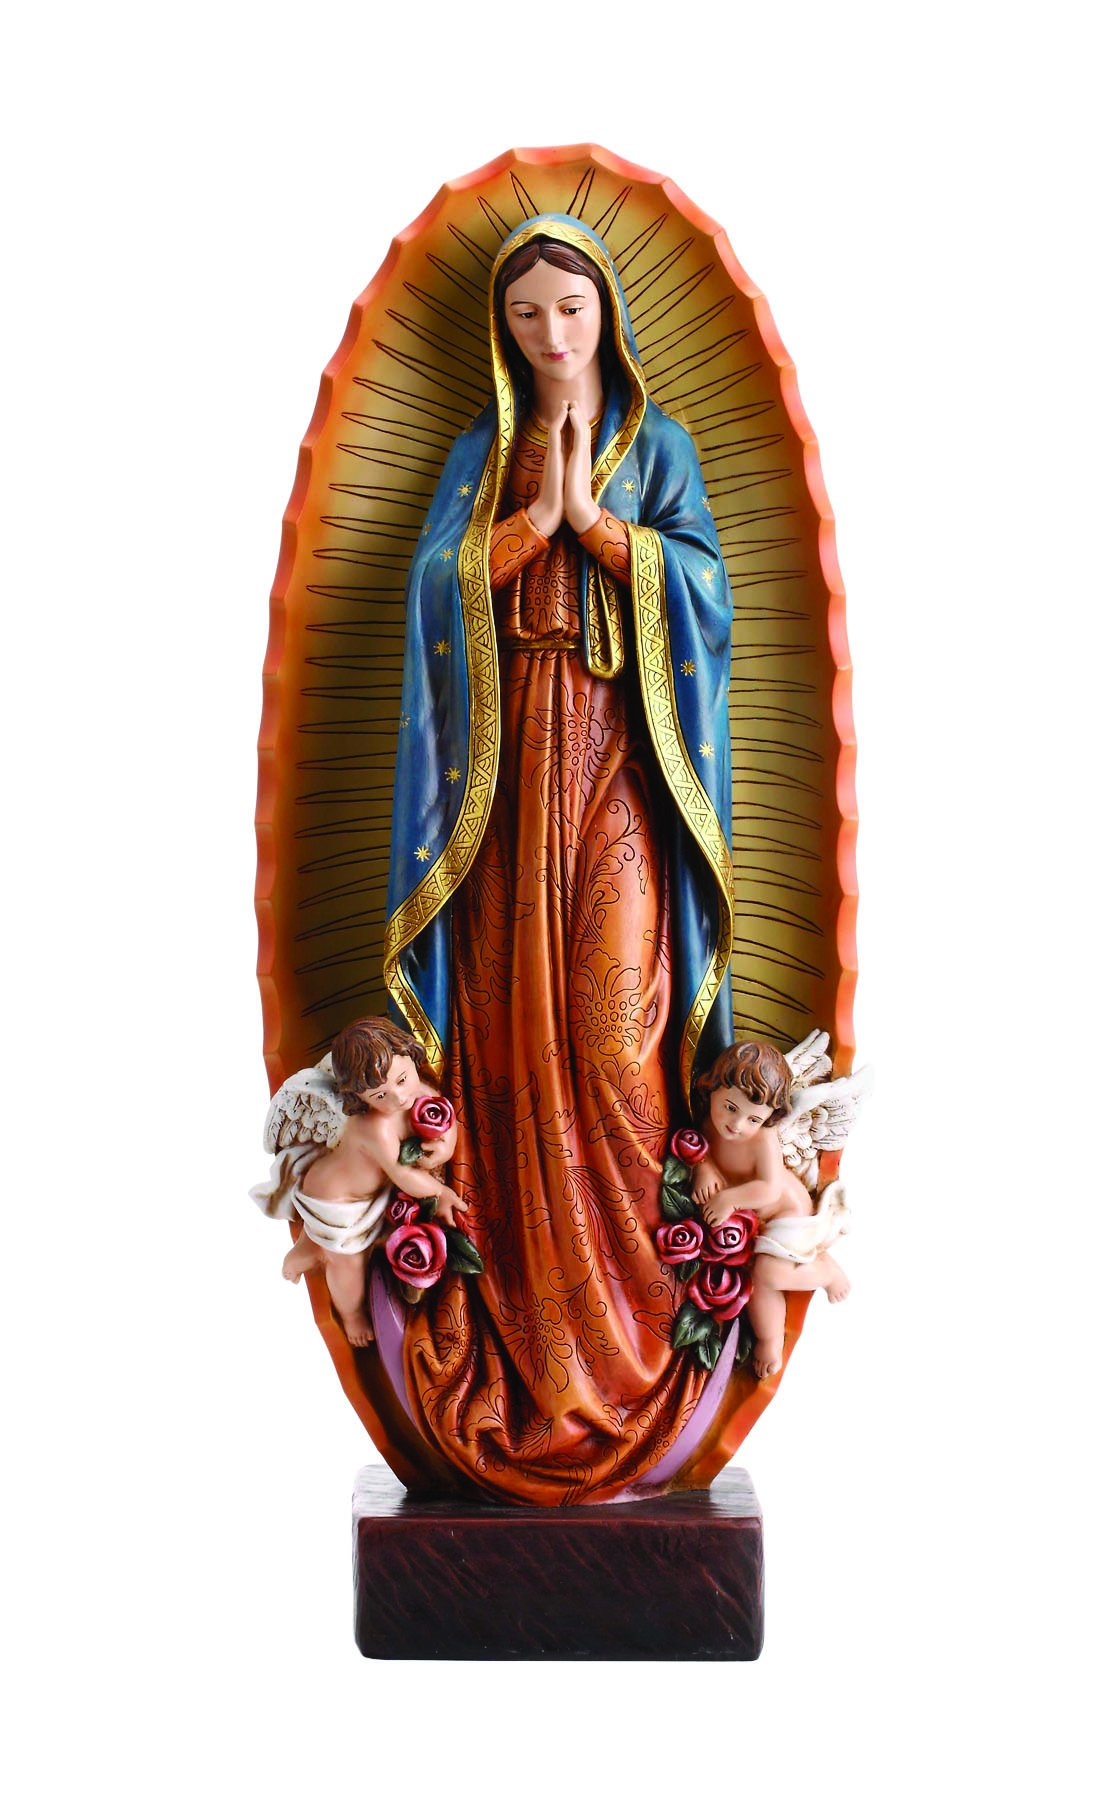 Our Lady Virgen De Guadalupe Resin Statue, 23 1/2 Inch by Avalon Gallery